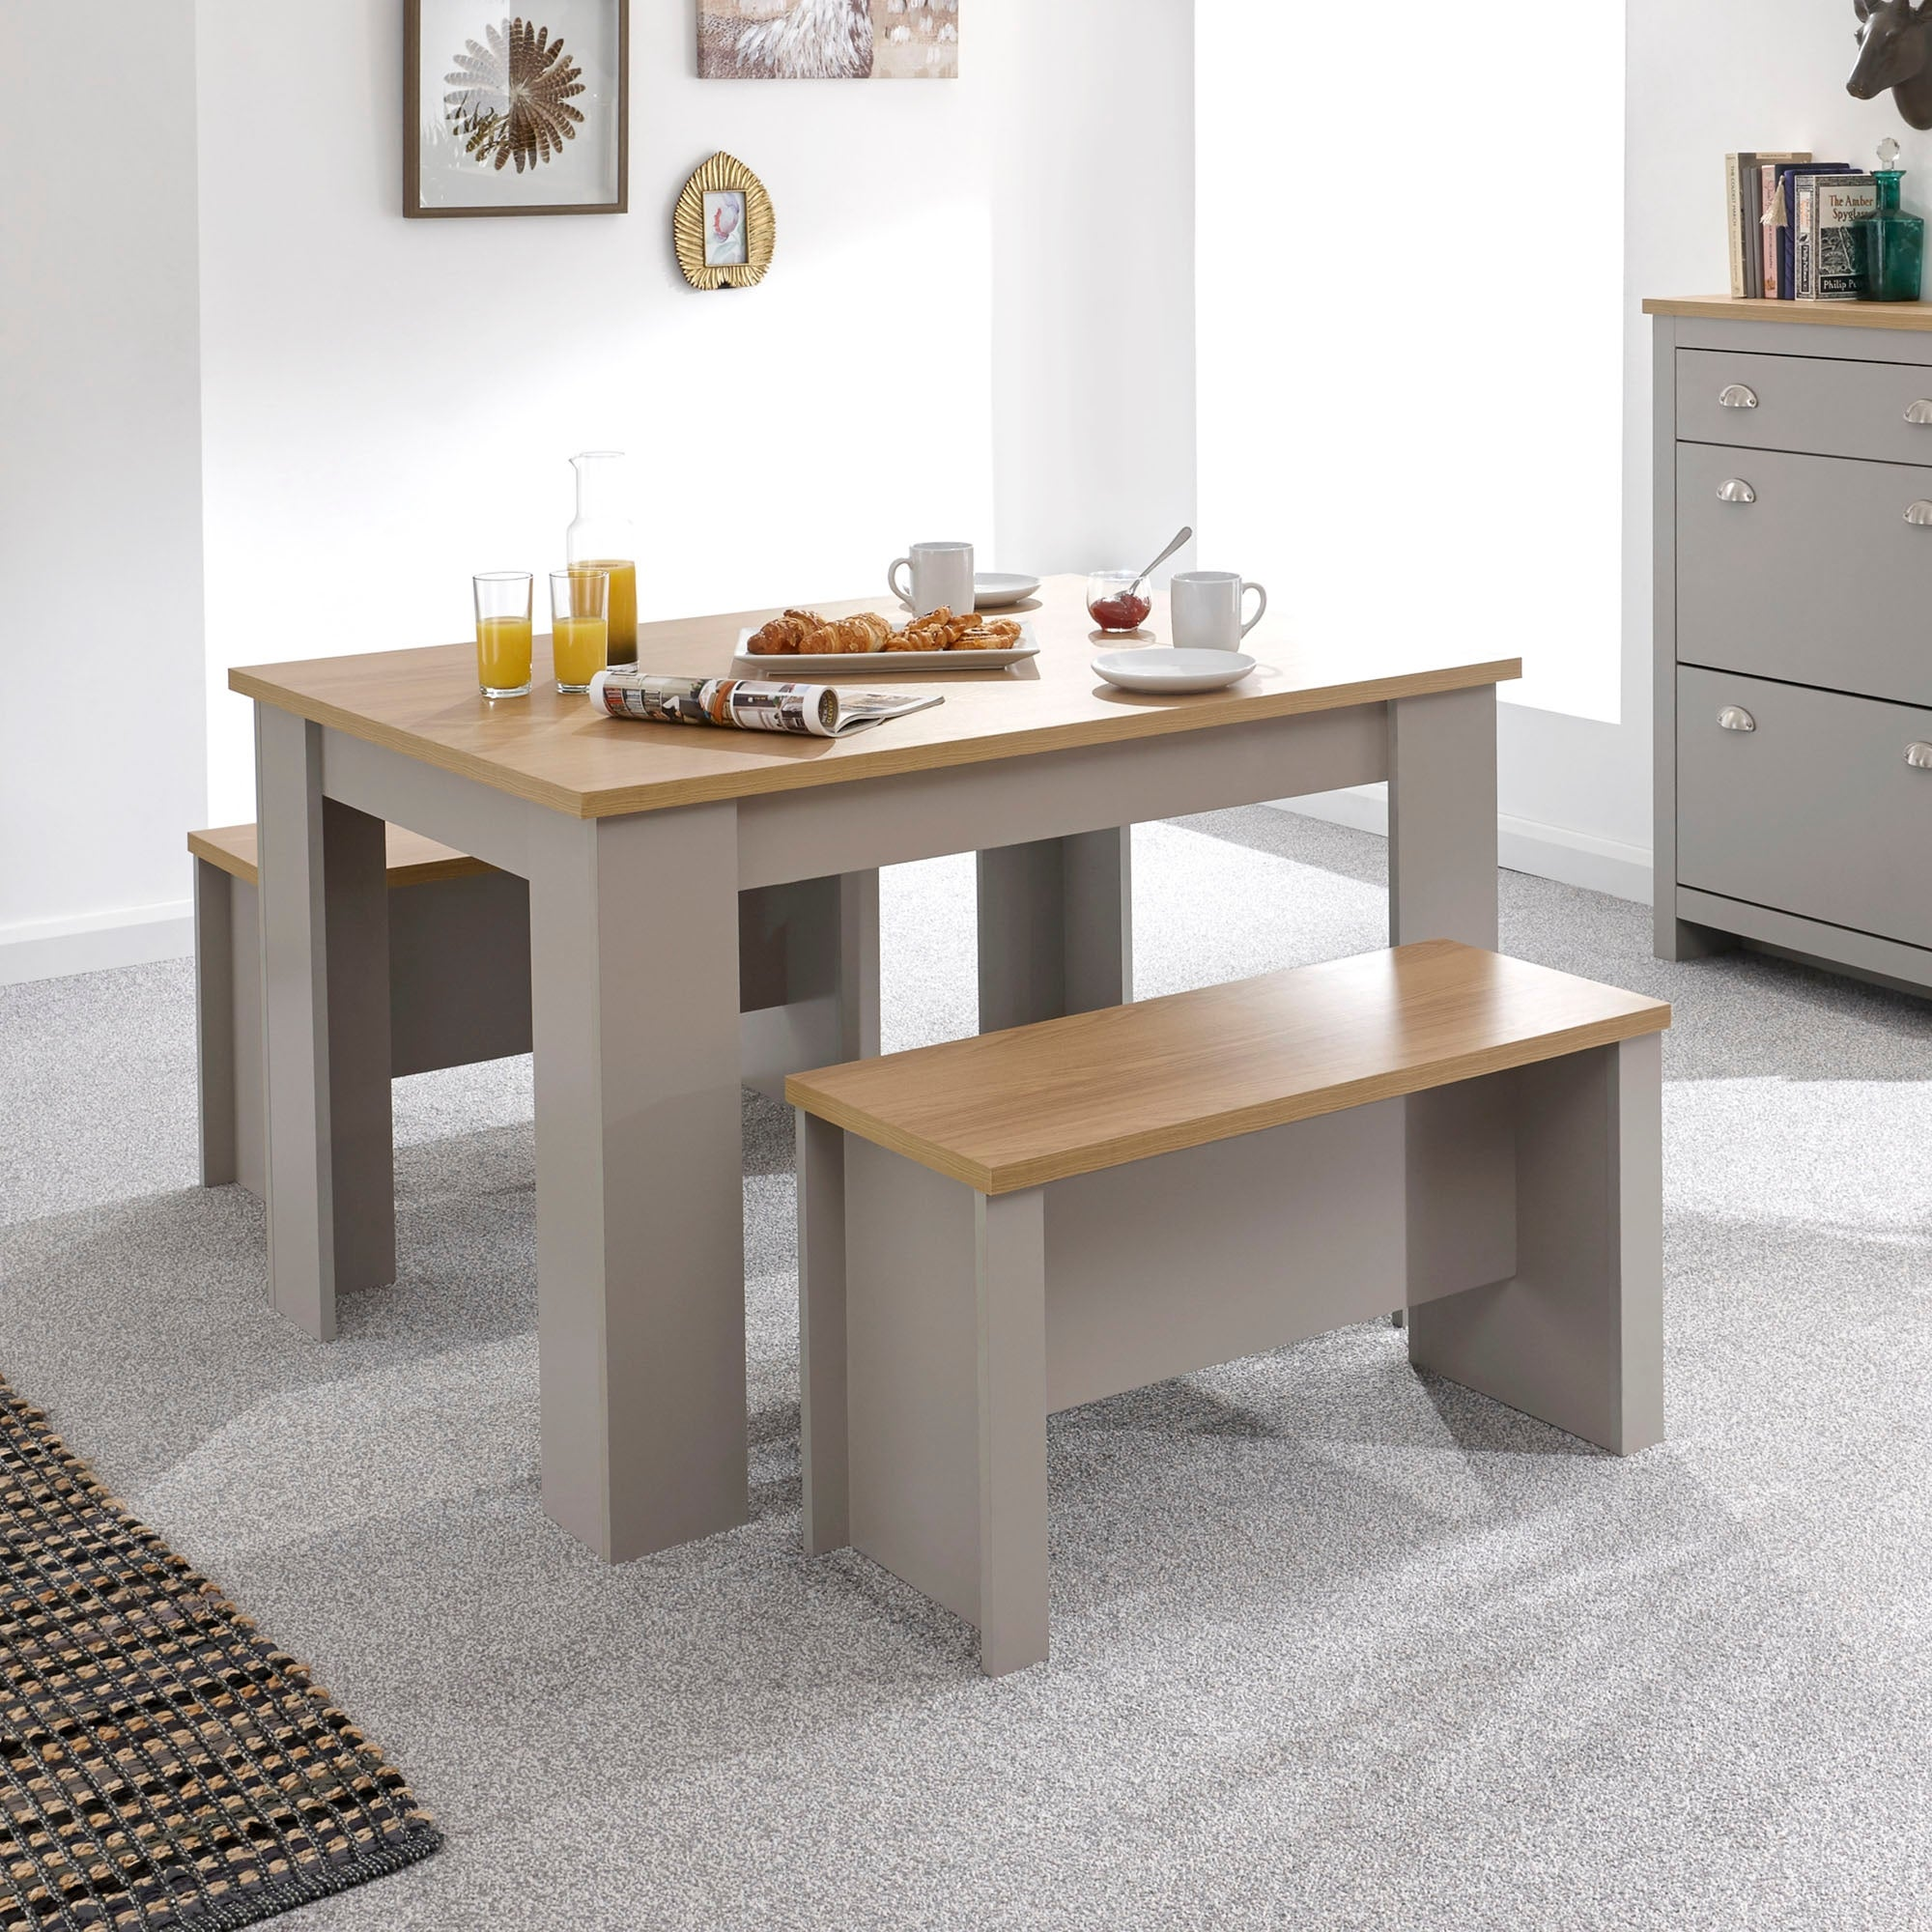 Lancaster 120cm Dining Table and Bench Set Grey